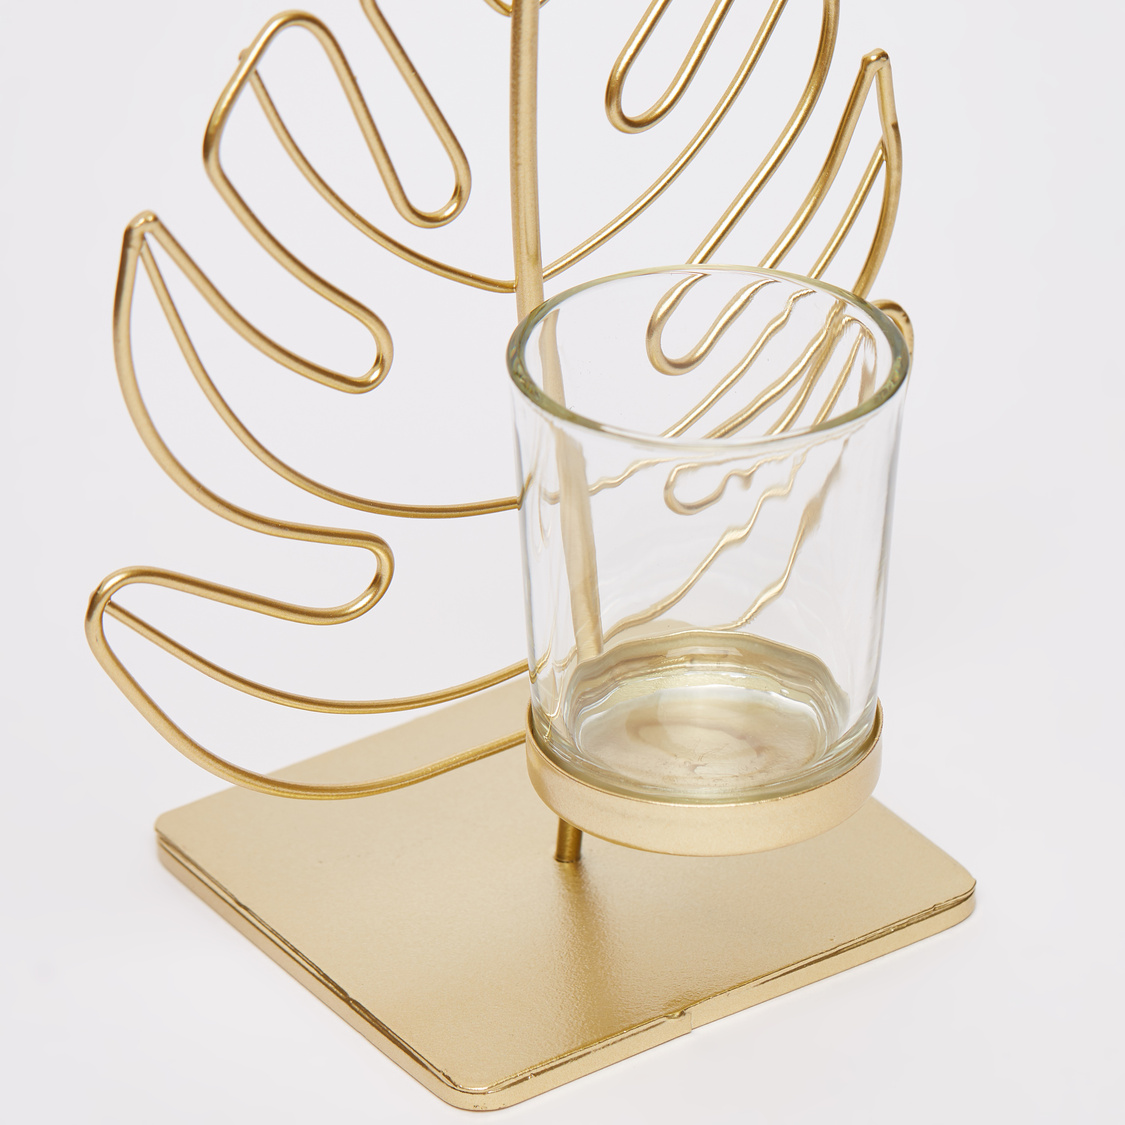 Leaf Accented Candleholder - 13.5x10x19 cms